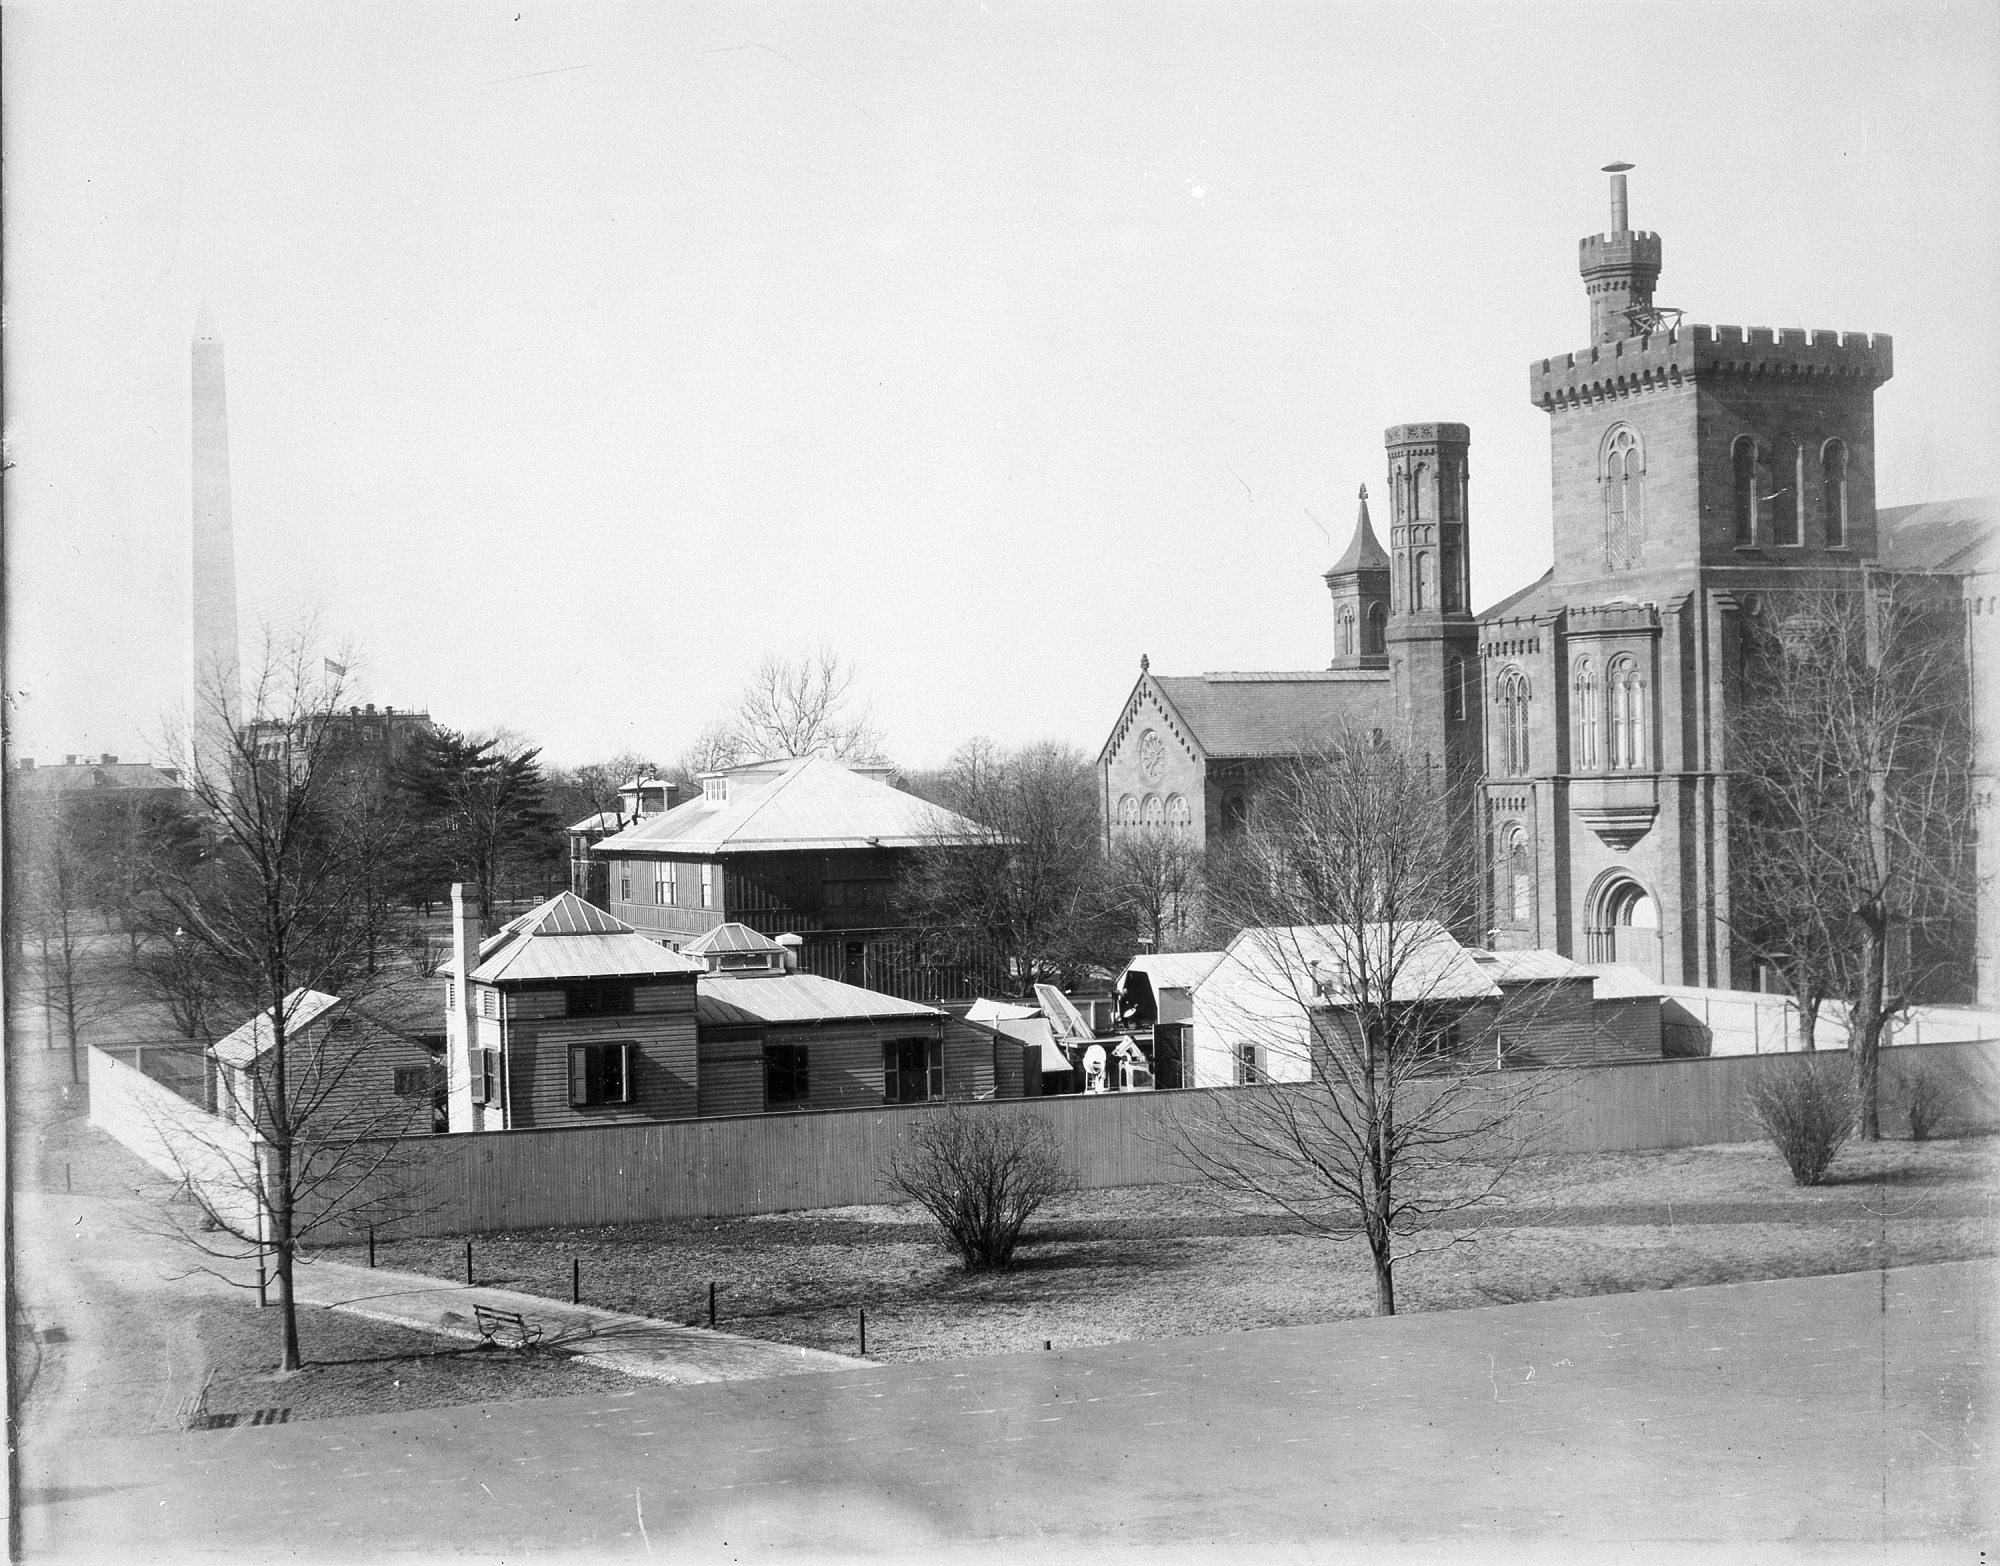 The Smithsonian Astrophysical Observatory located in the South Yard behind the south facade of the Smithsonian Institution Building. The Astrophysical Observatory is enclosed by a wooden fence. The Annex, also called the South Shed, is behind the Observatory. The Laboratory of Natural History, the old Agriculture Building, and the Washington Monument are visible in the background